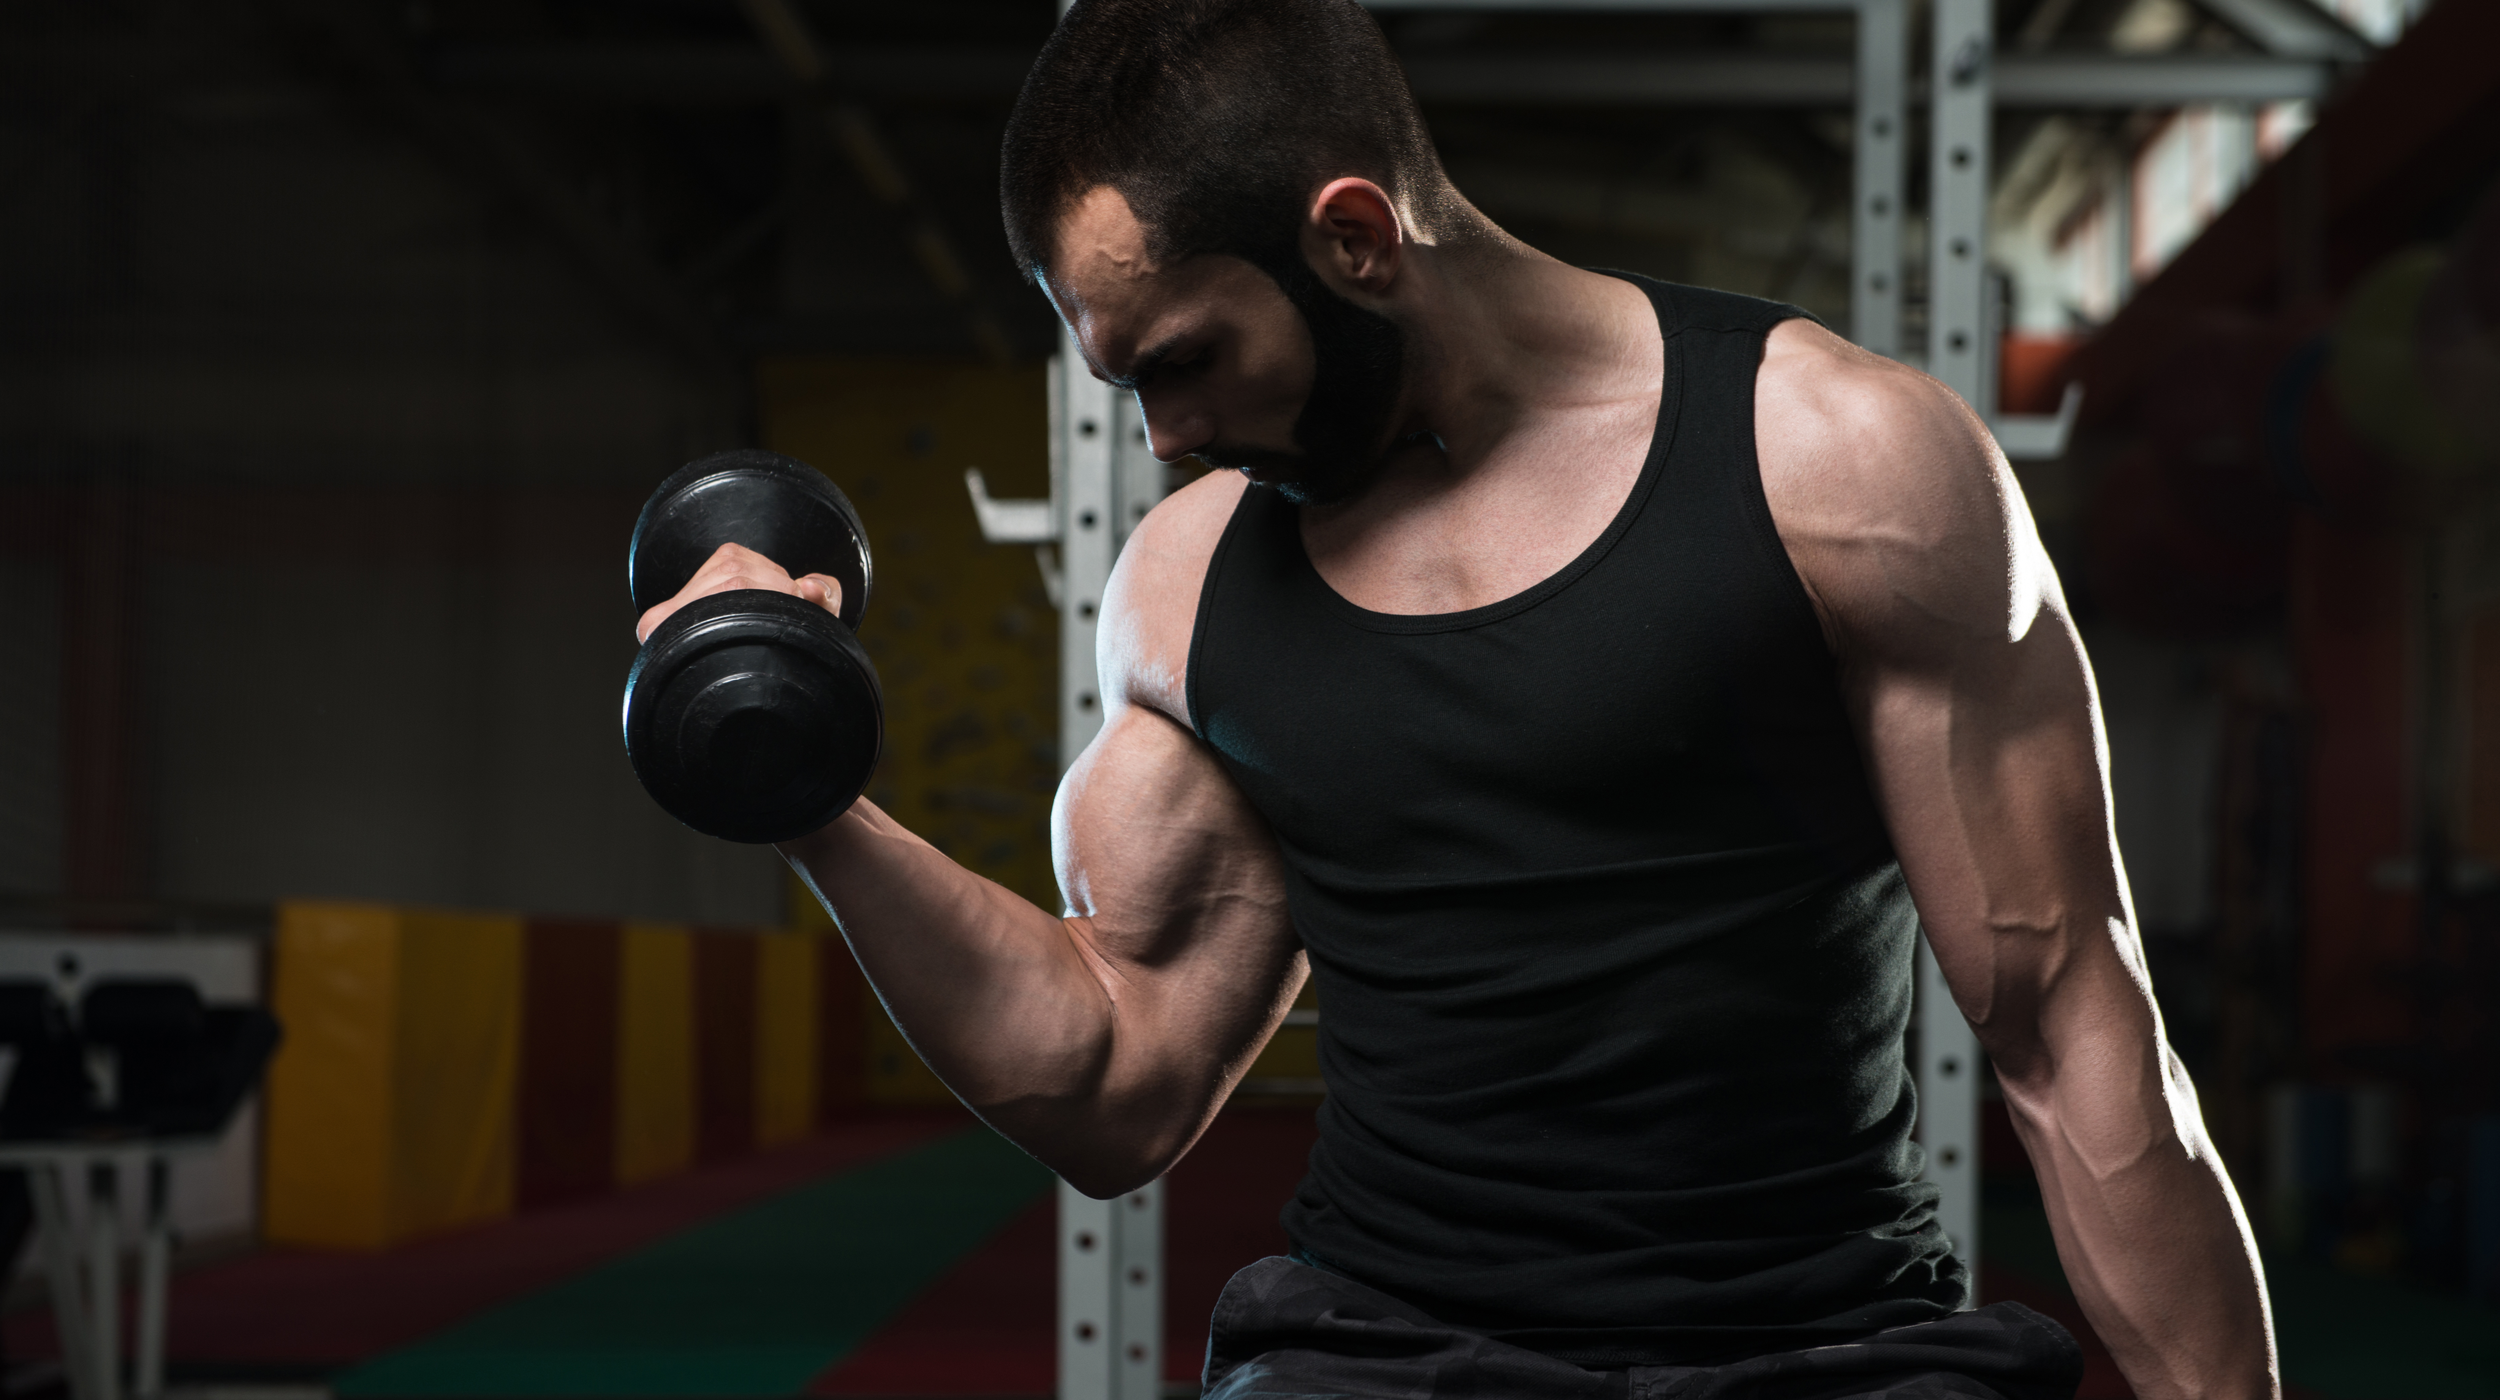 How Often Should I Train My Arms?